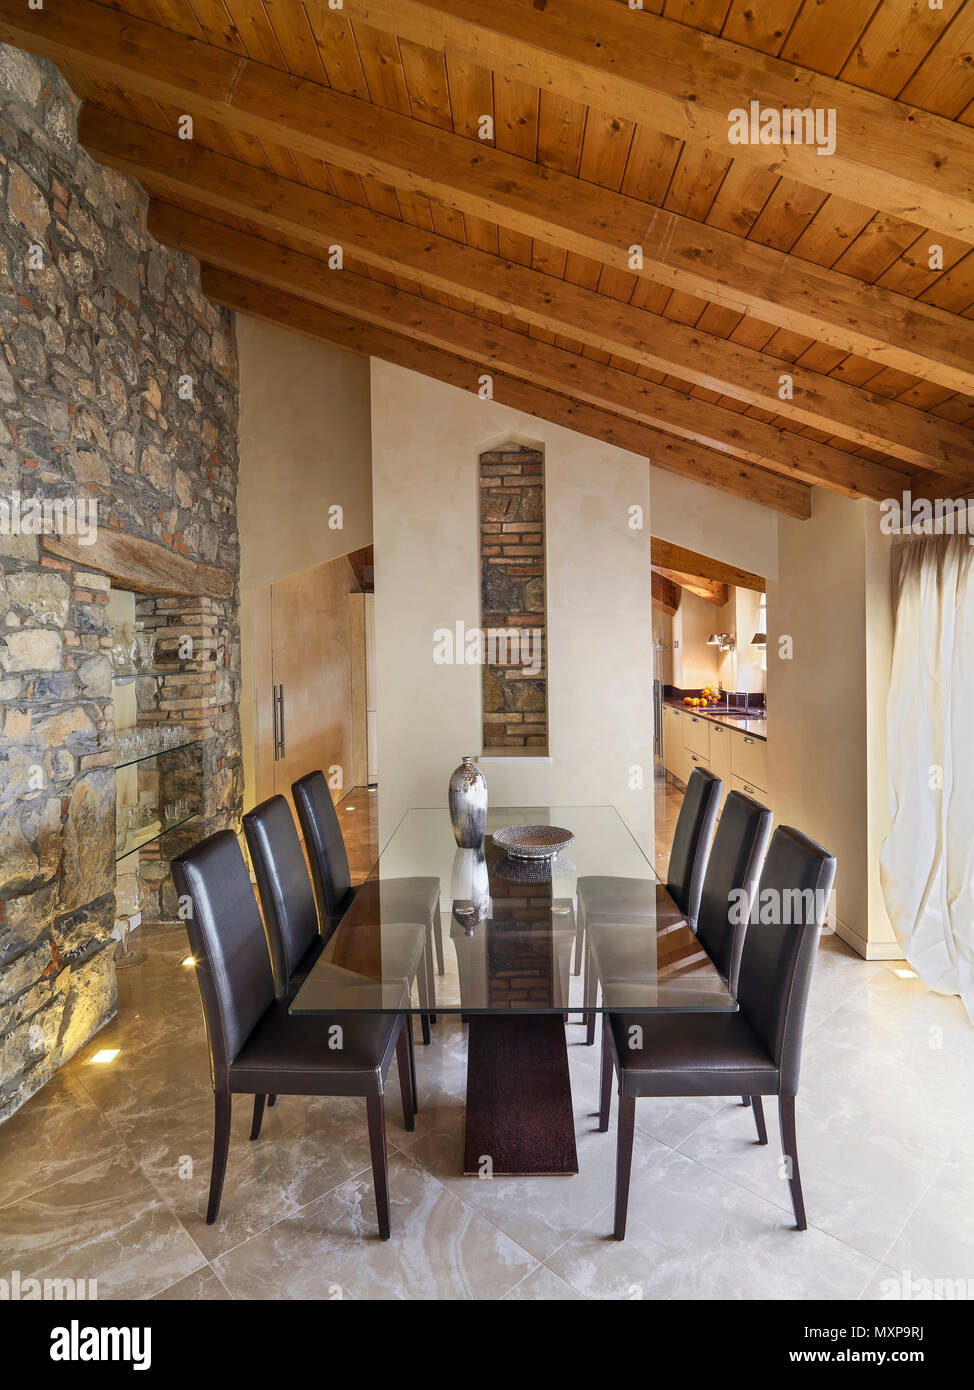 dining room interior in the foreground the glass dining table with brown leather chairs the floor and the wall are made of stone while the ceiling is  - Stock Image